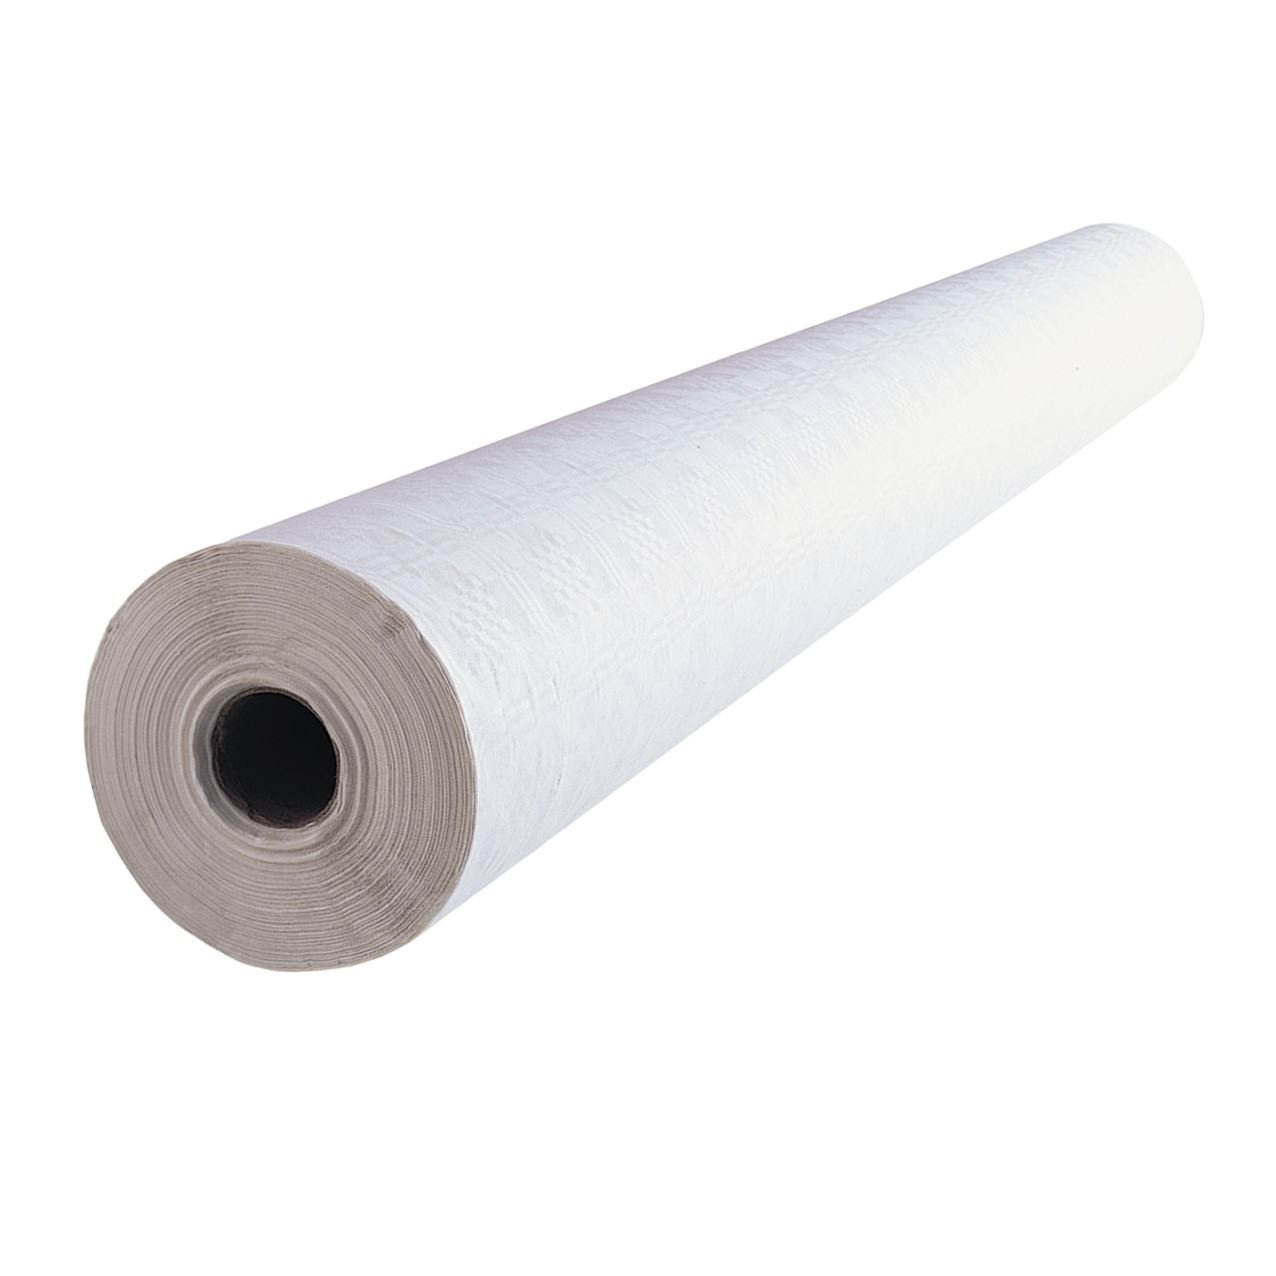 1 x Simpa® White Banqueting Roll 100M (L) x 1.16M (W) Domestic & Commercial Party Catering Event Supplies High Quality Disposable Paper Table Covering with embossed damask design.